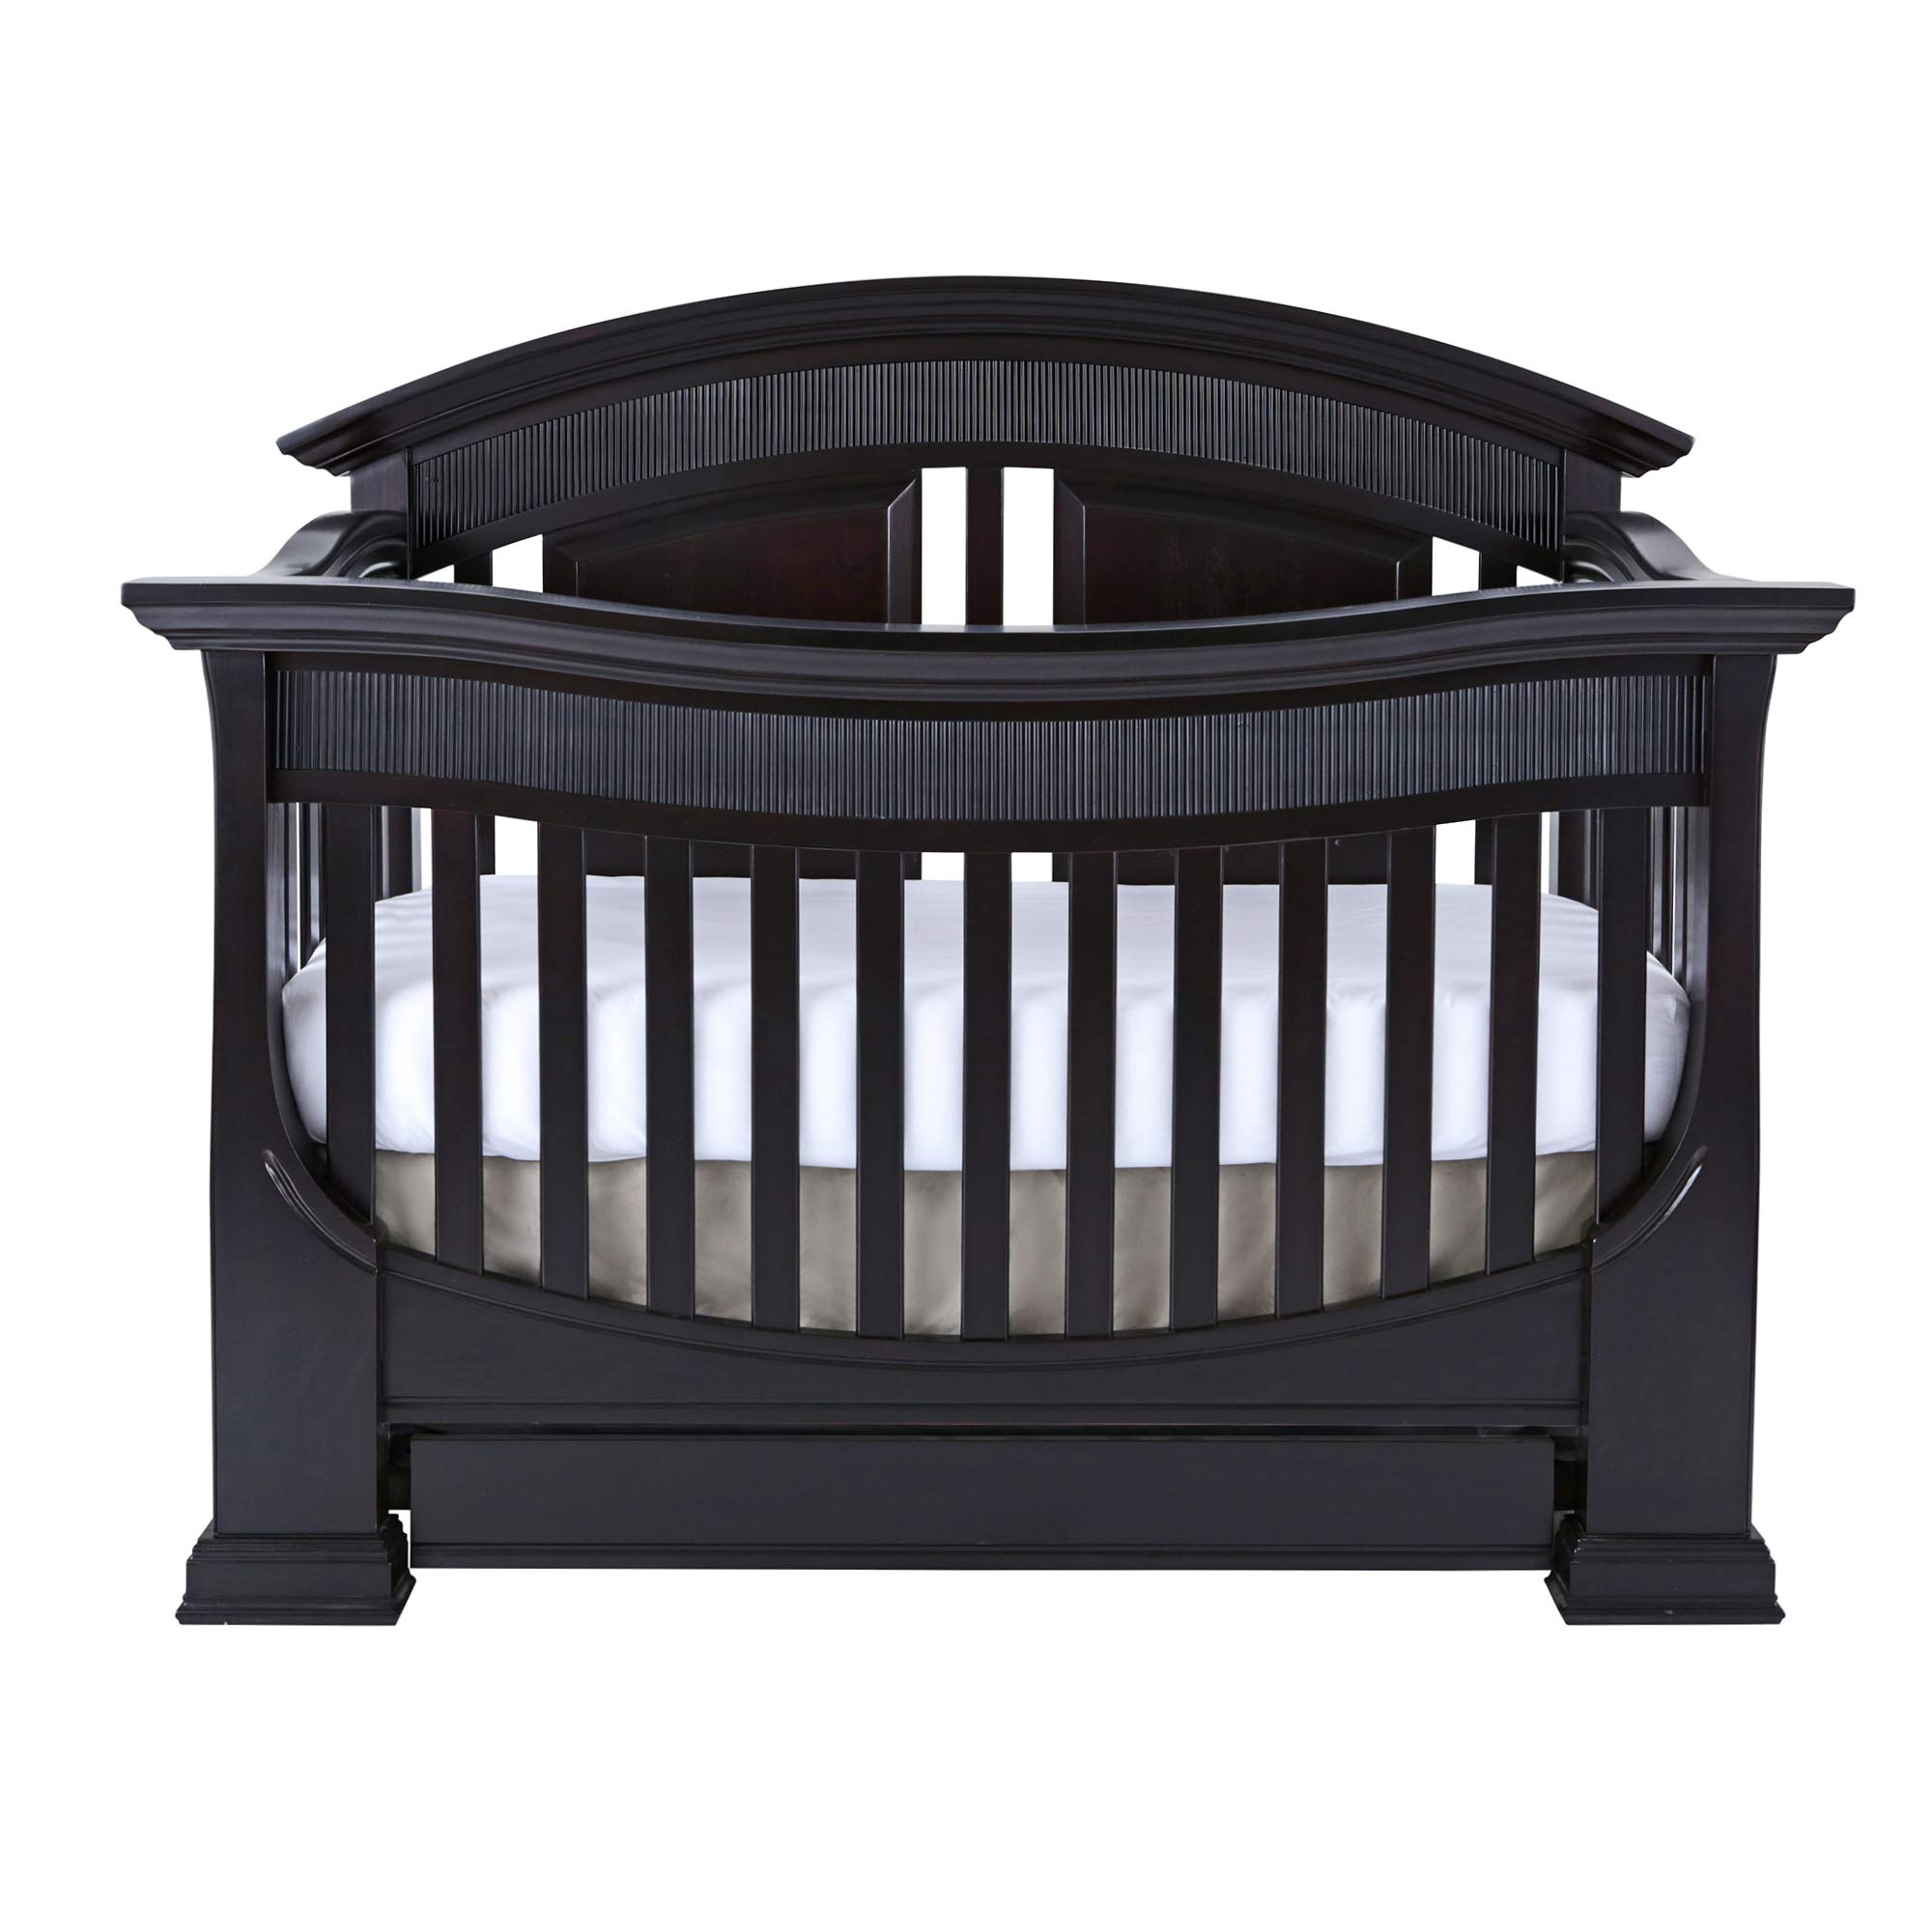 Full Size Conversion Kit Bed Rails for Baby Appleseed Beaumont, Chelmsford, Davenport, Kennedy, Millbury, Stratford Cribs (Espresso) by CC KITS (Image #2)